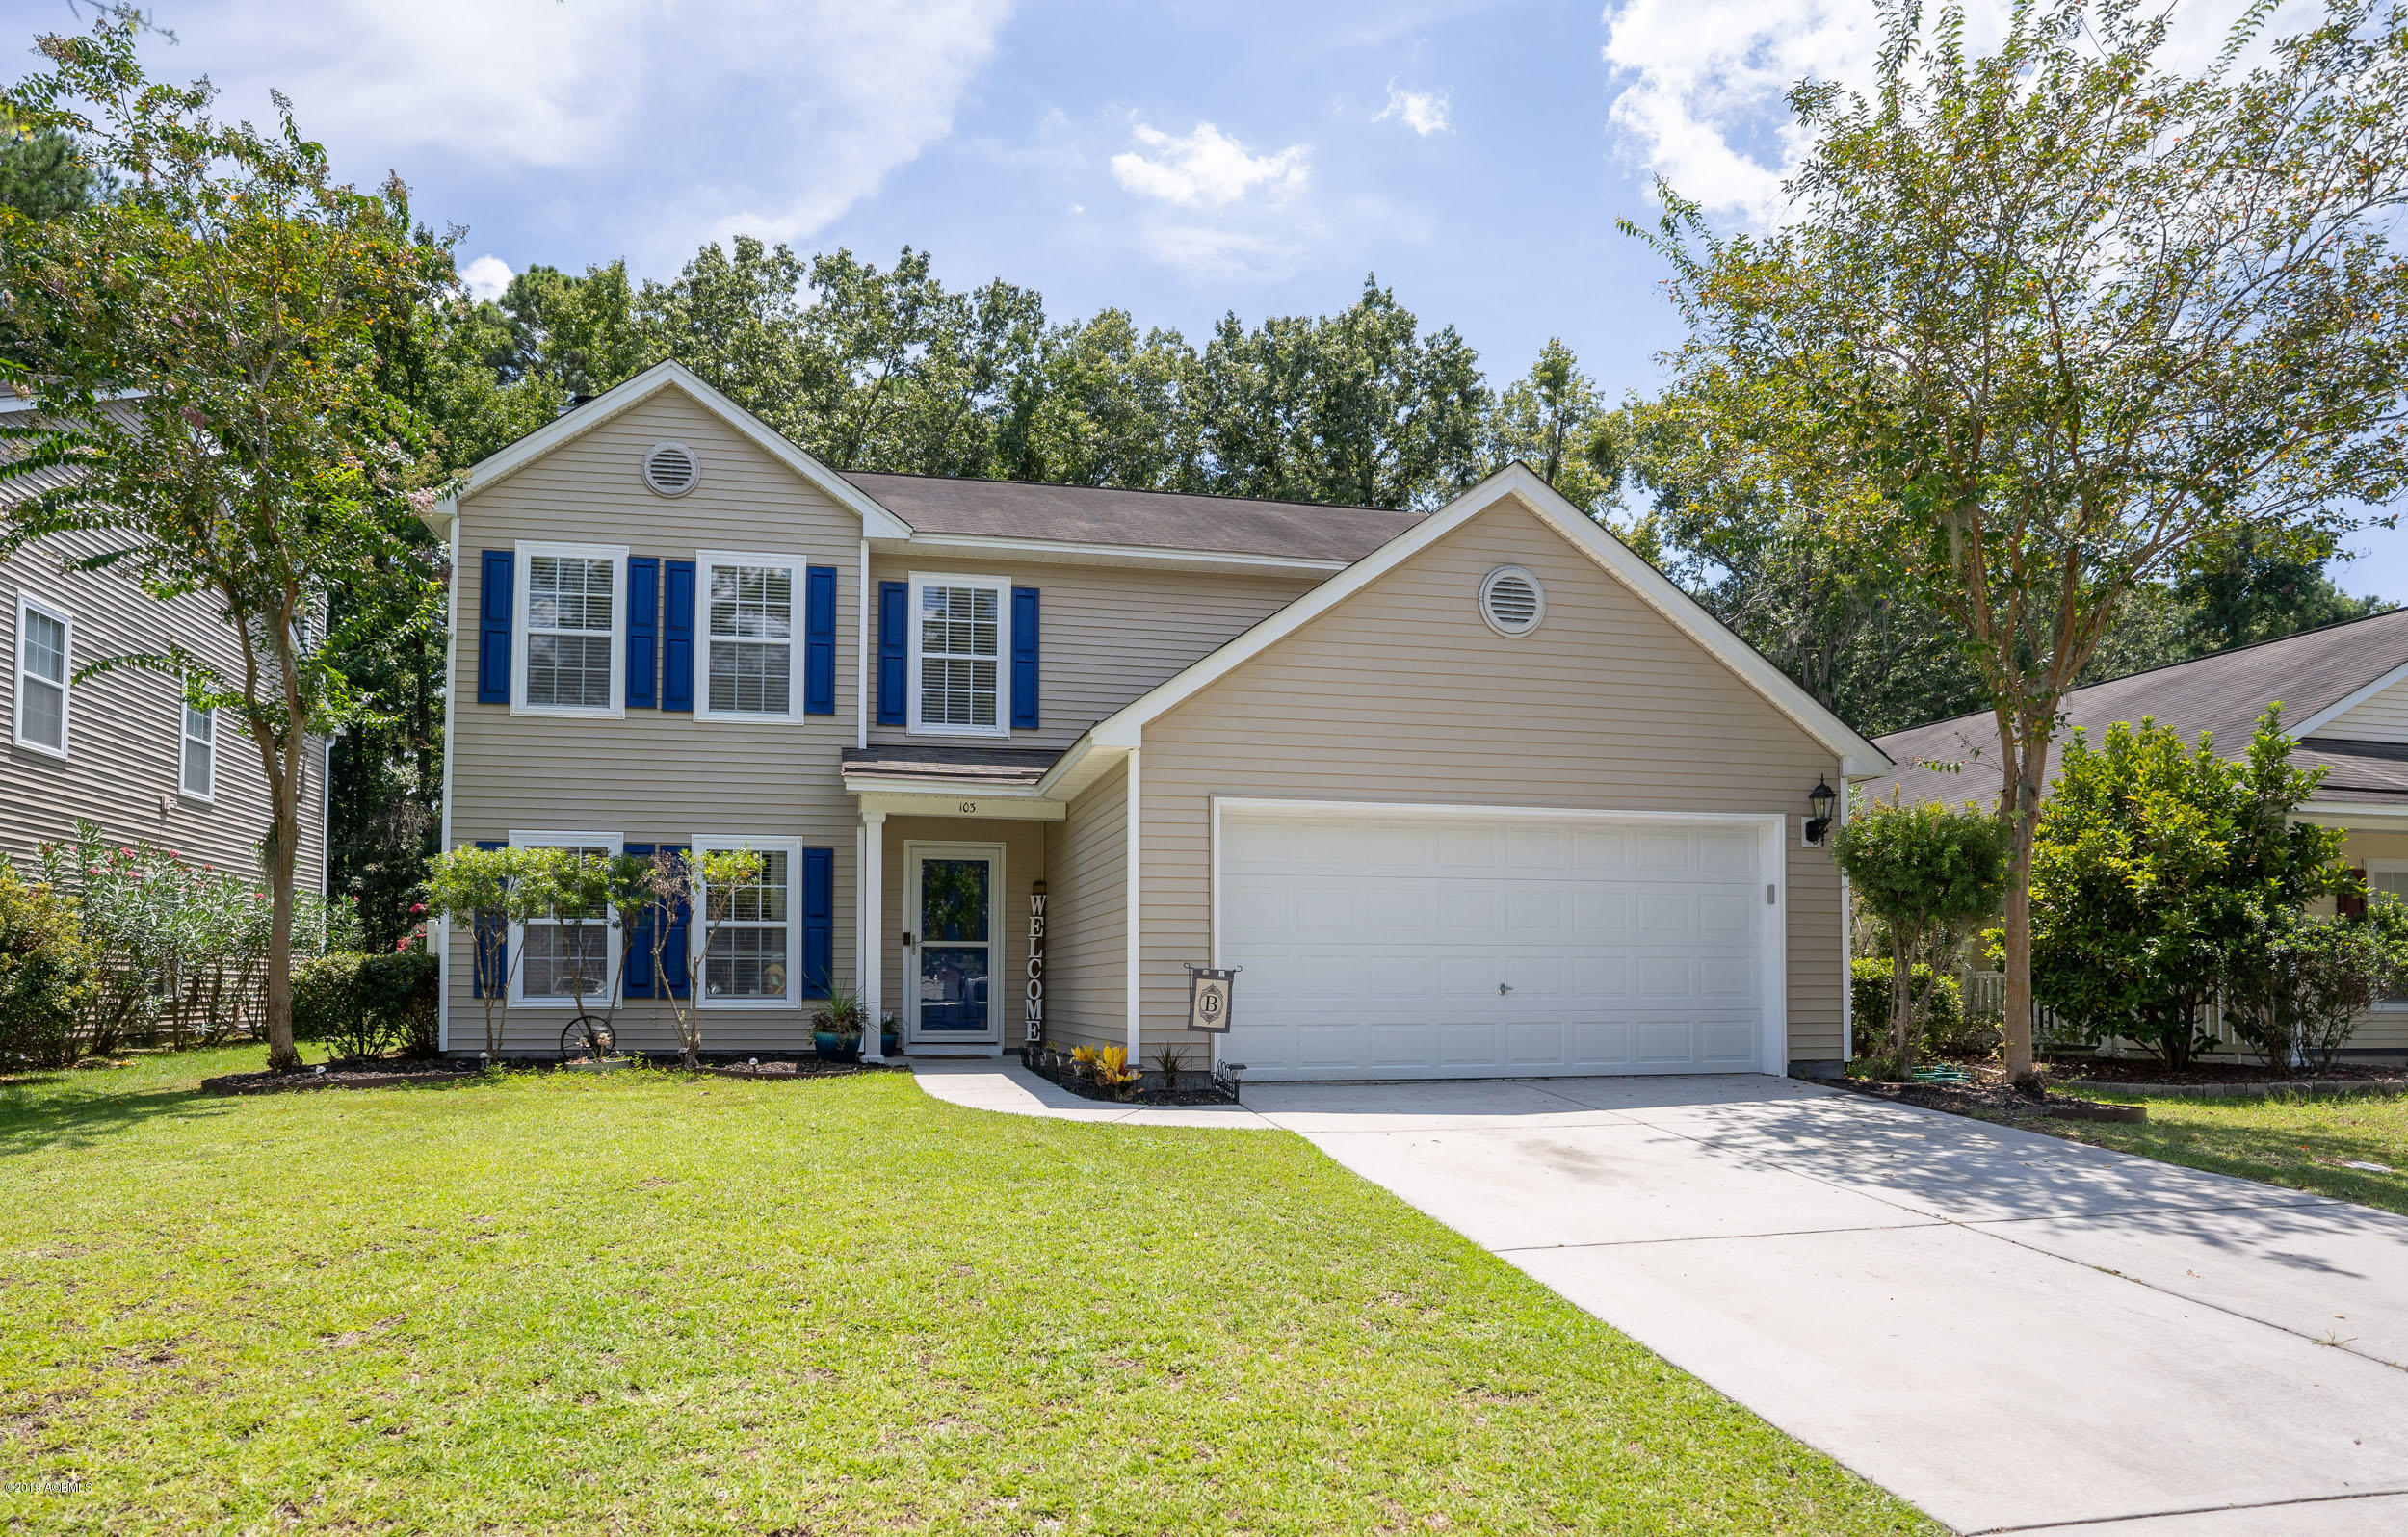 Photo of 103 Winyah Way, Beaufort, SC 29906